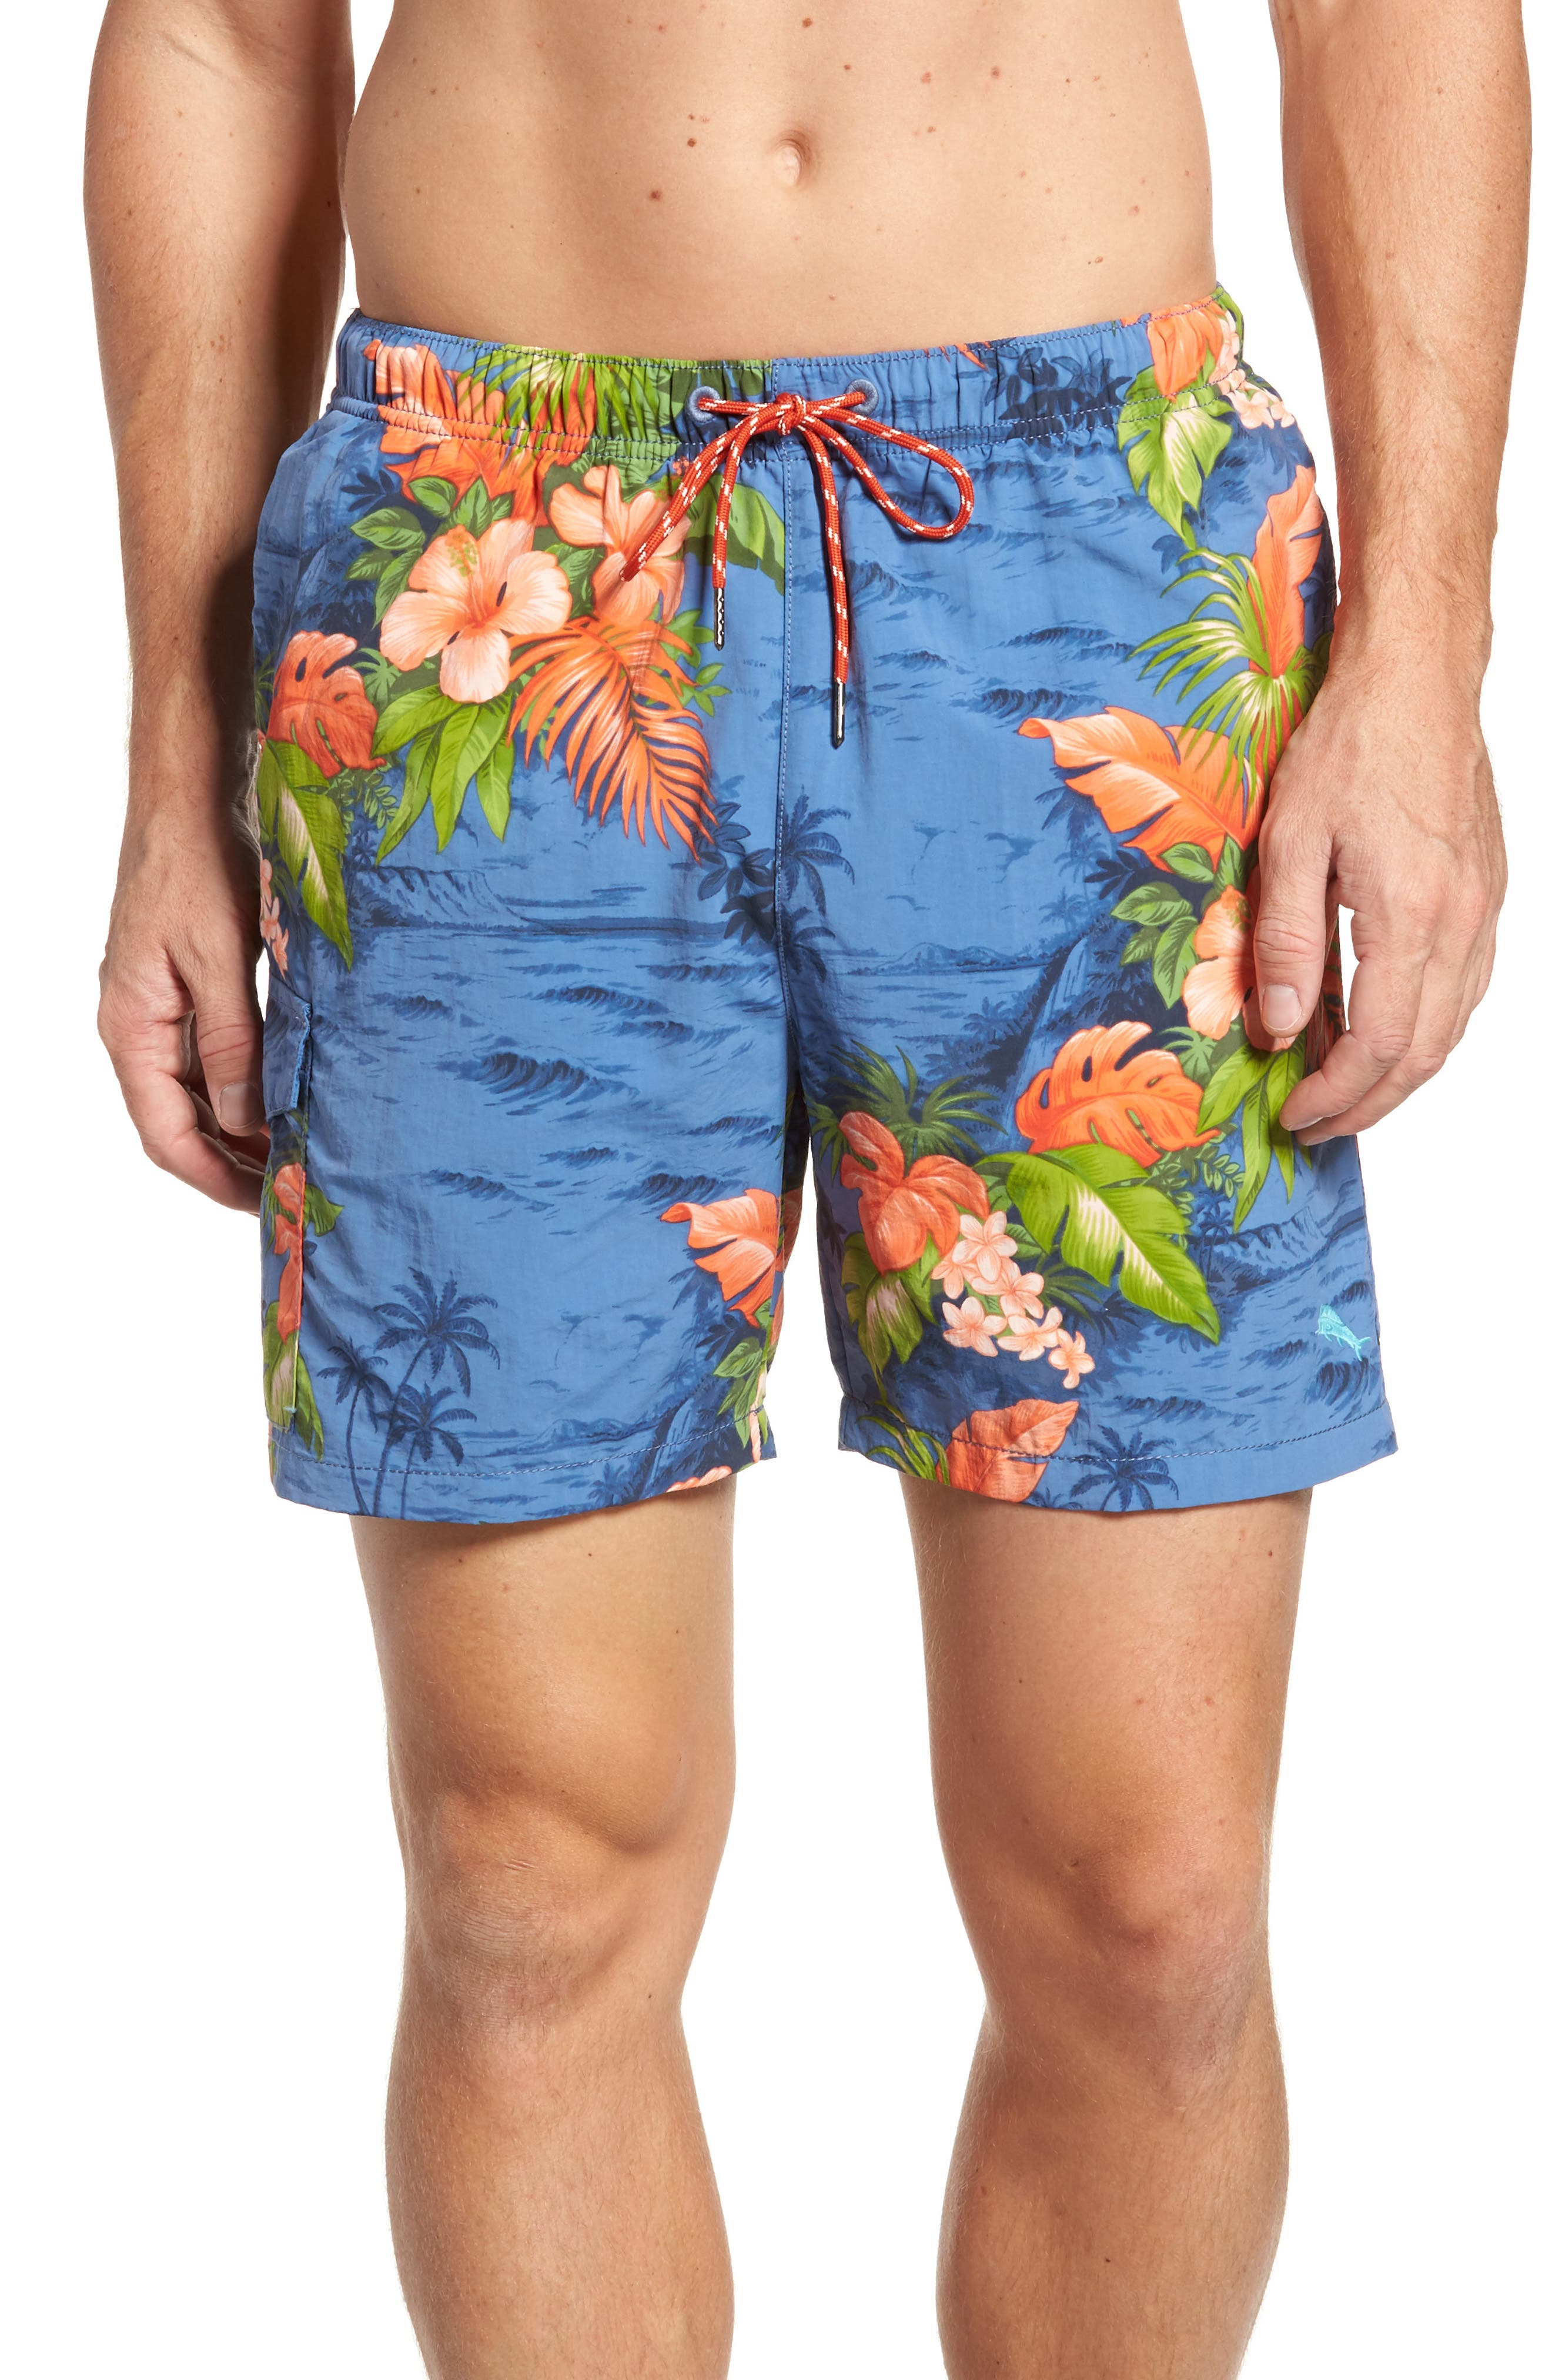 Naples Fiji Ferns Swim Trunks,                         Main,                         color, Dockside Blue